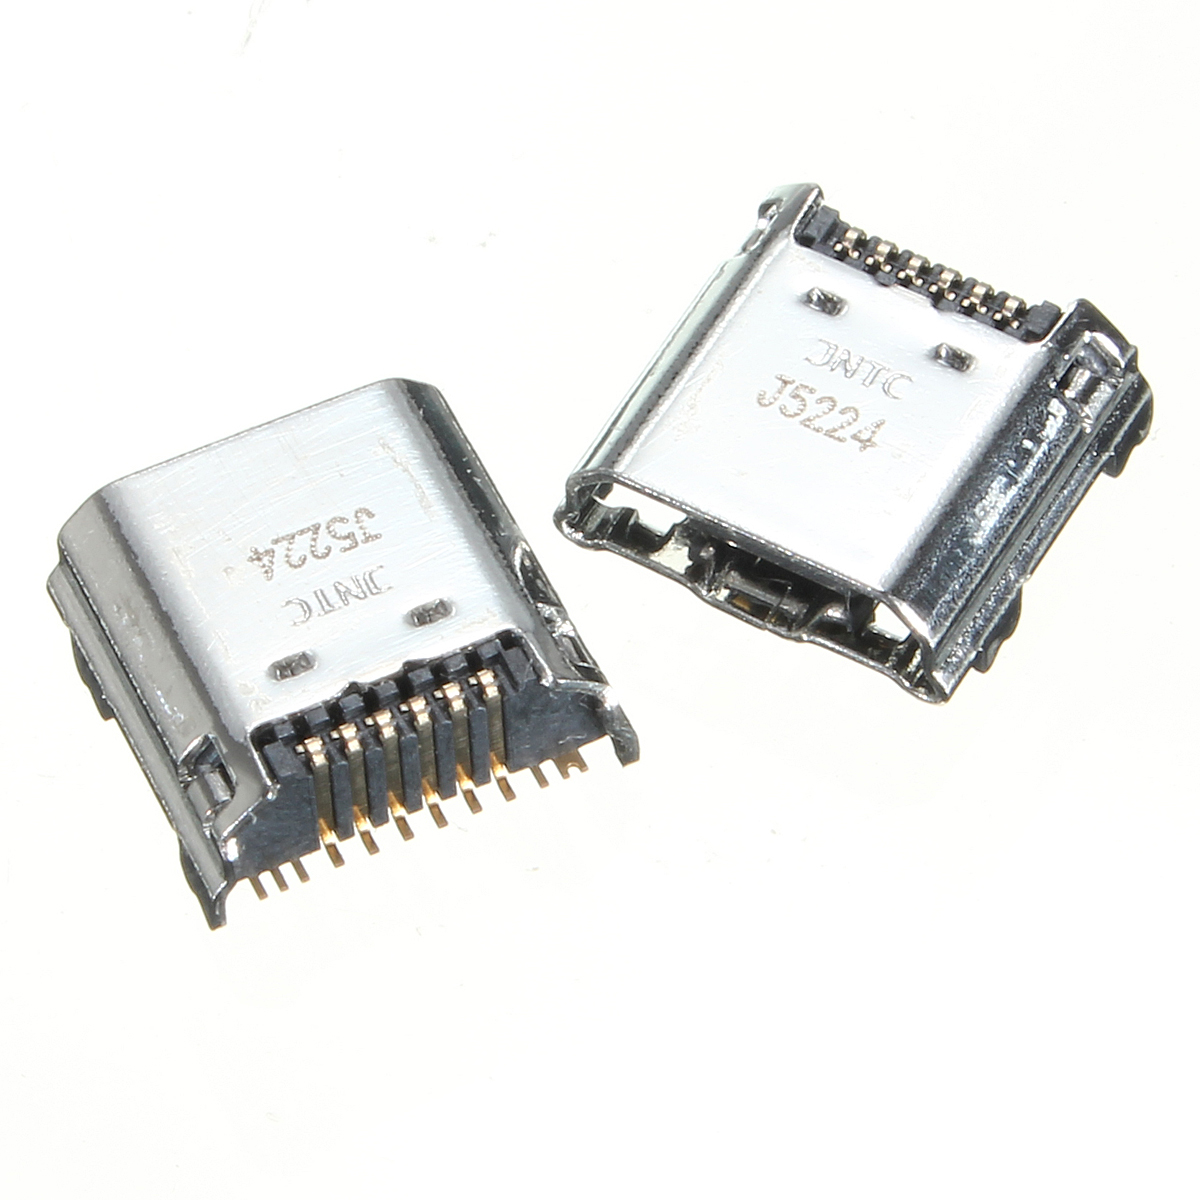 10 Pin Mini Usb Connector